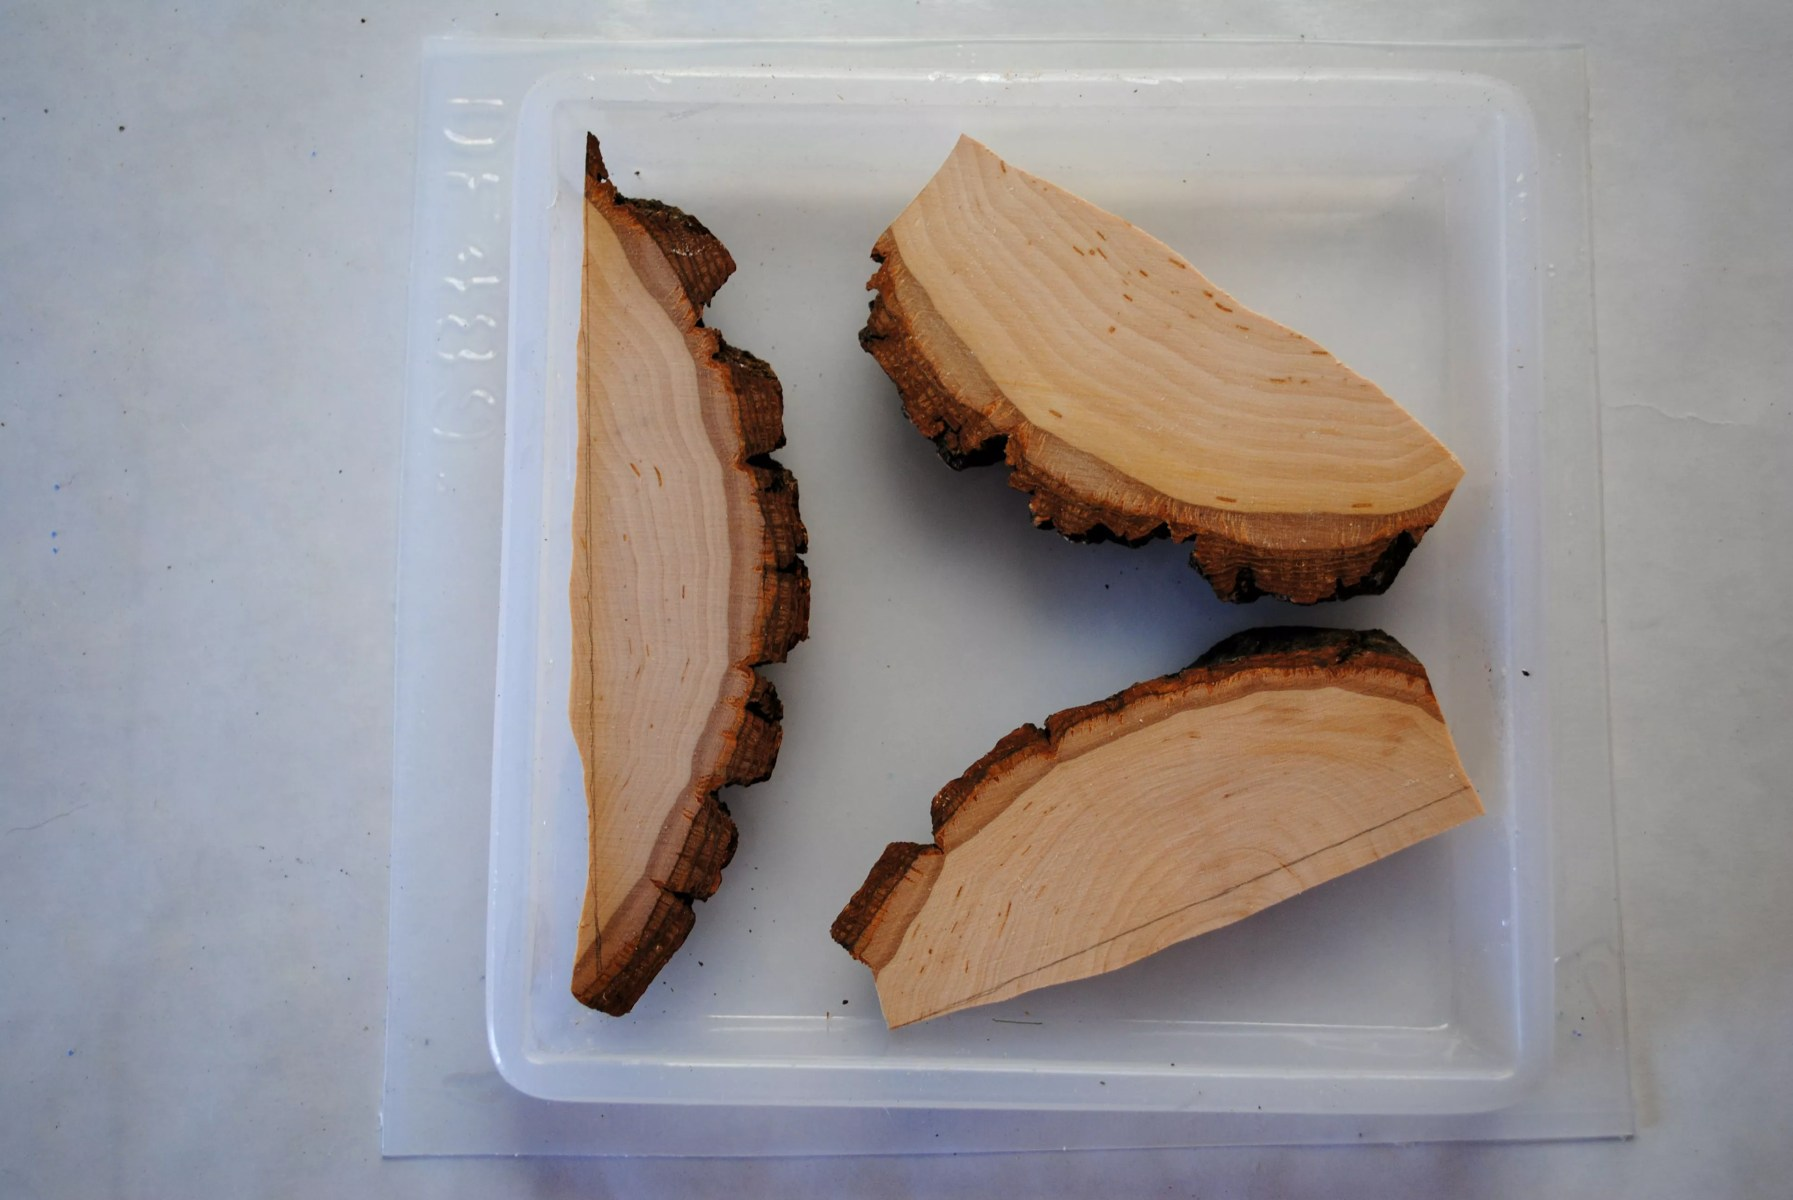 three cut pieces of wood in a square resin mold